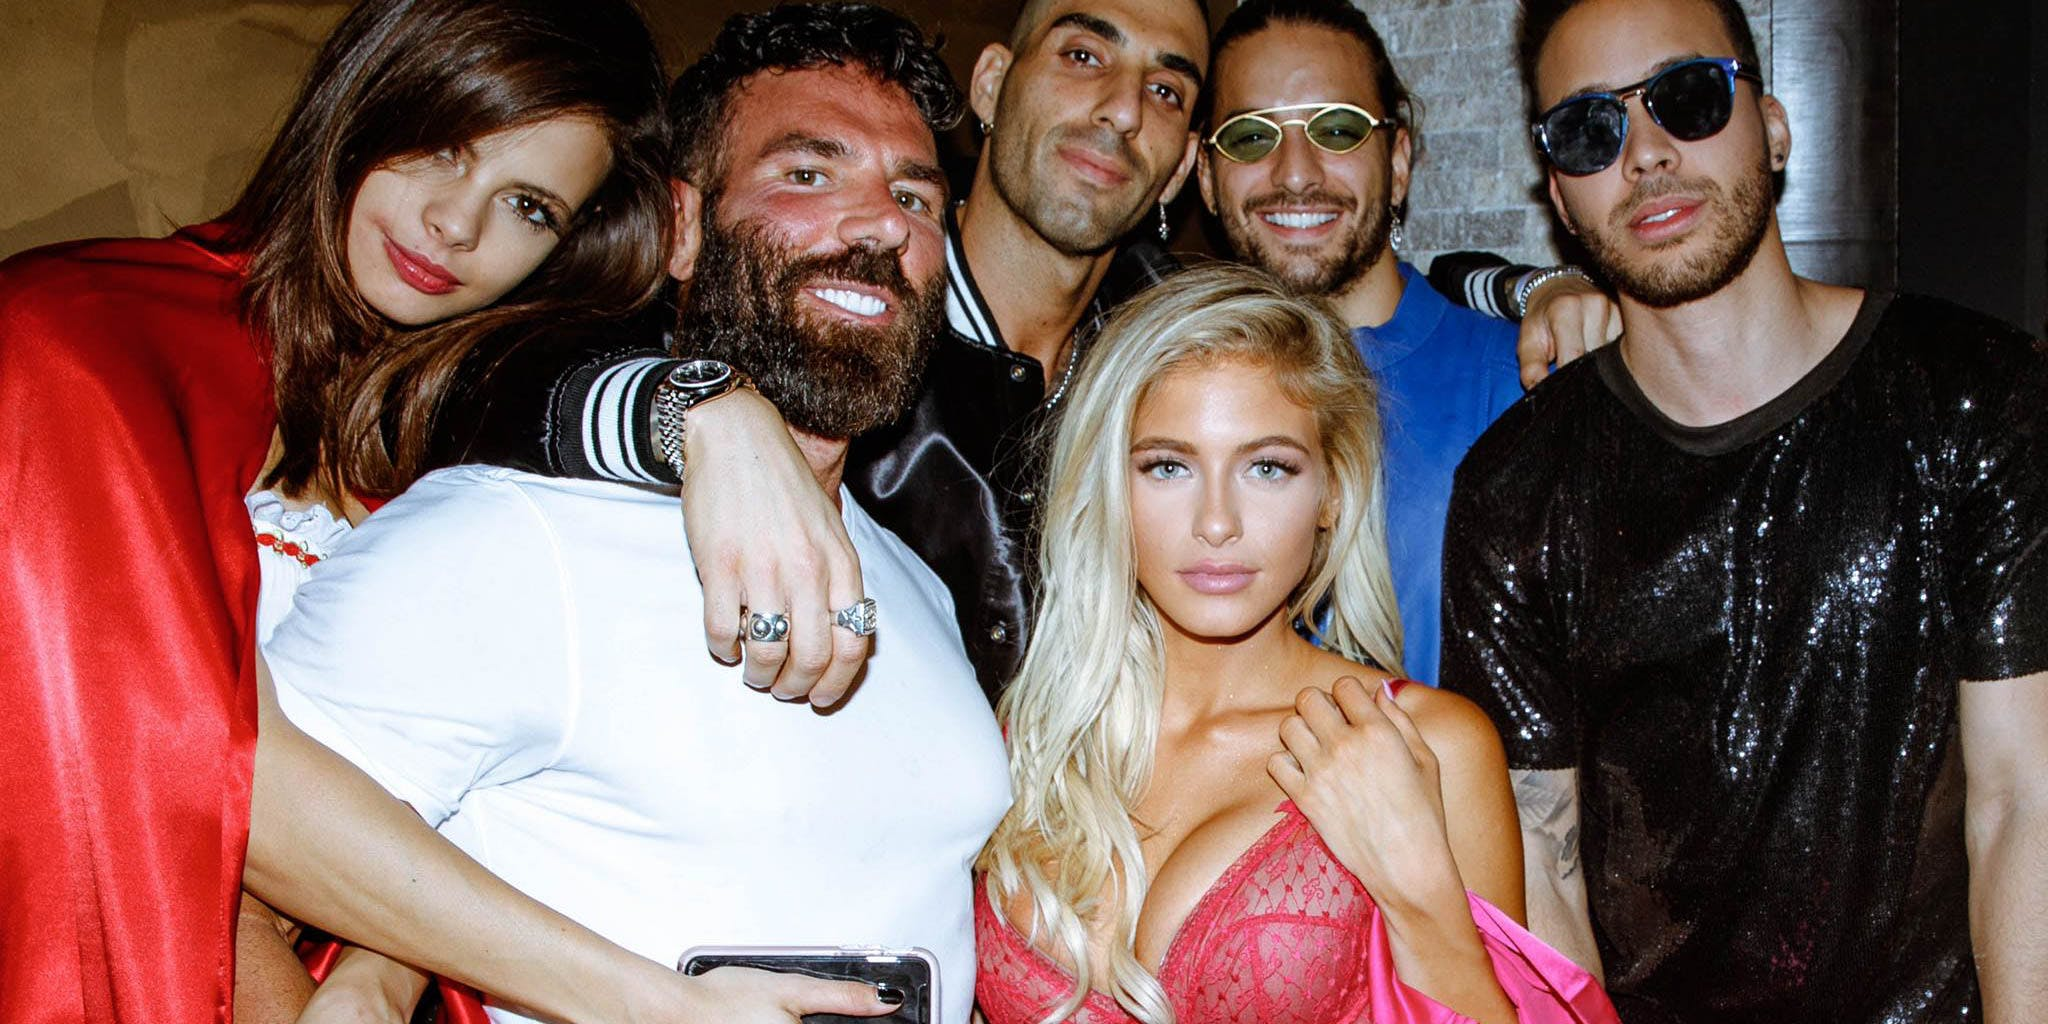 Dan Bilzerian at his Halloween party.